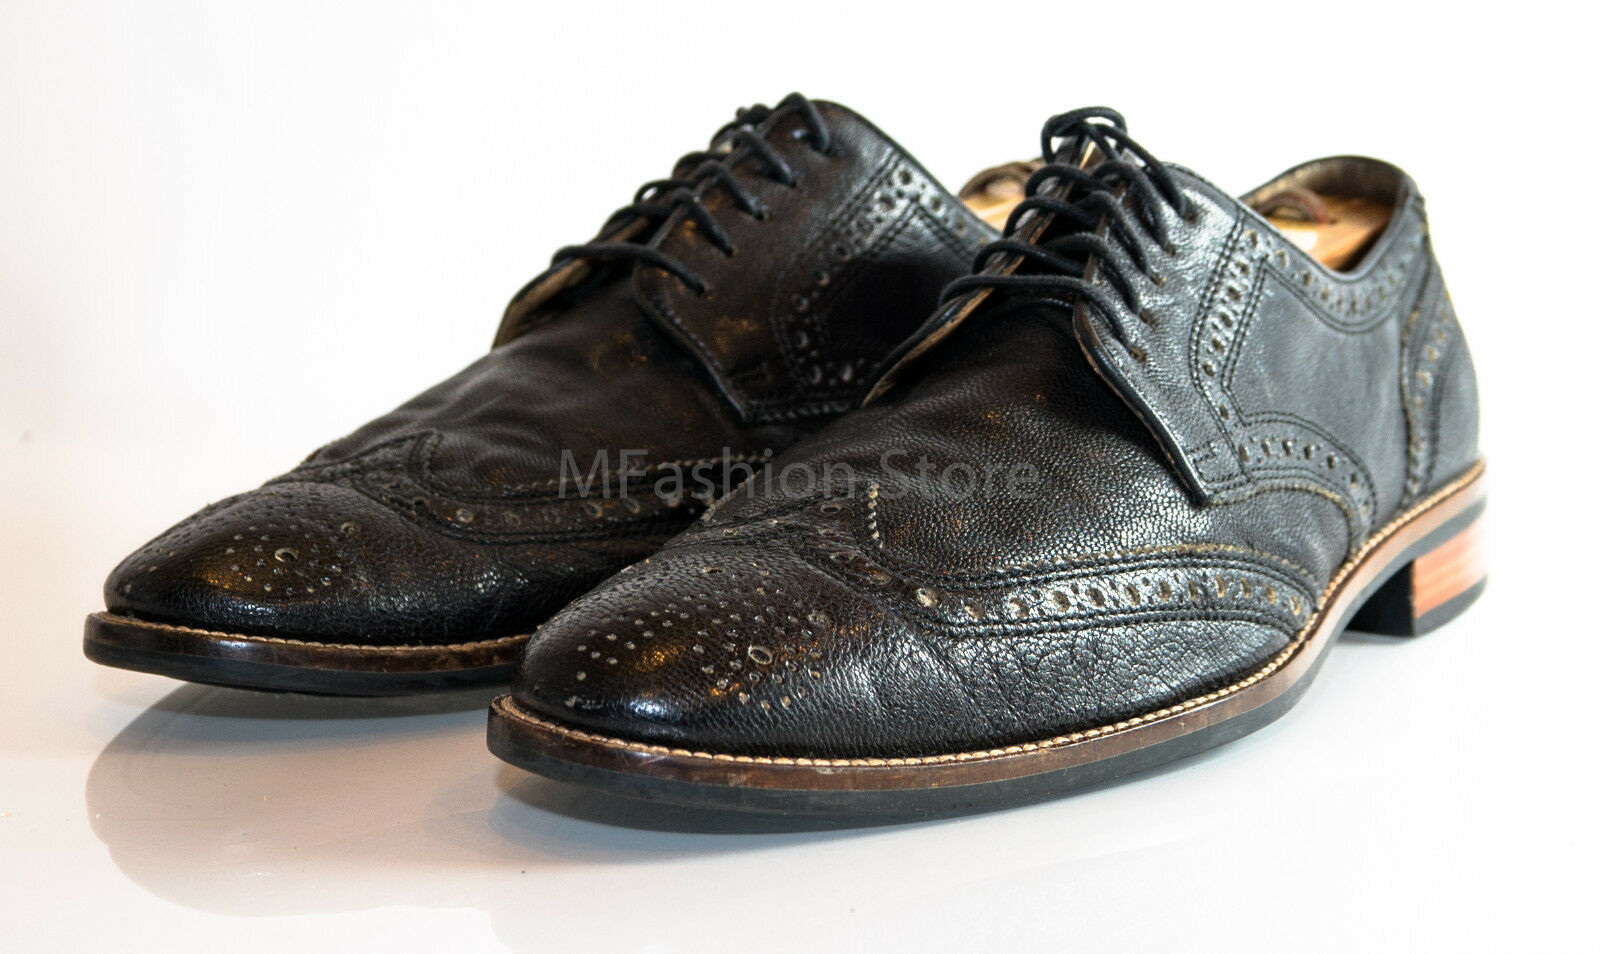 all'ingrosso a buon mercato Cole Haan Haan Haan nero Wing Tip Lace Up Loafers Dimensione US 8M Pre Owned  economico